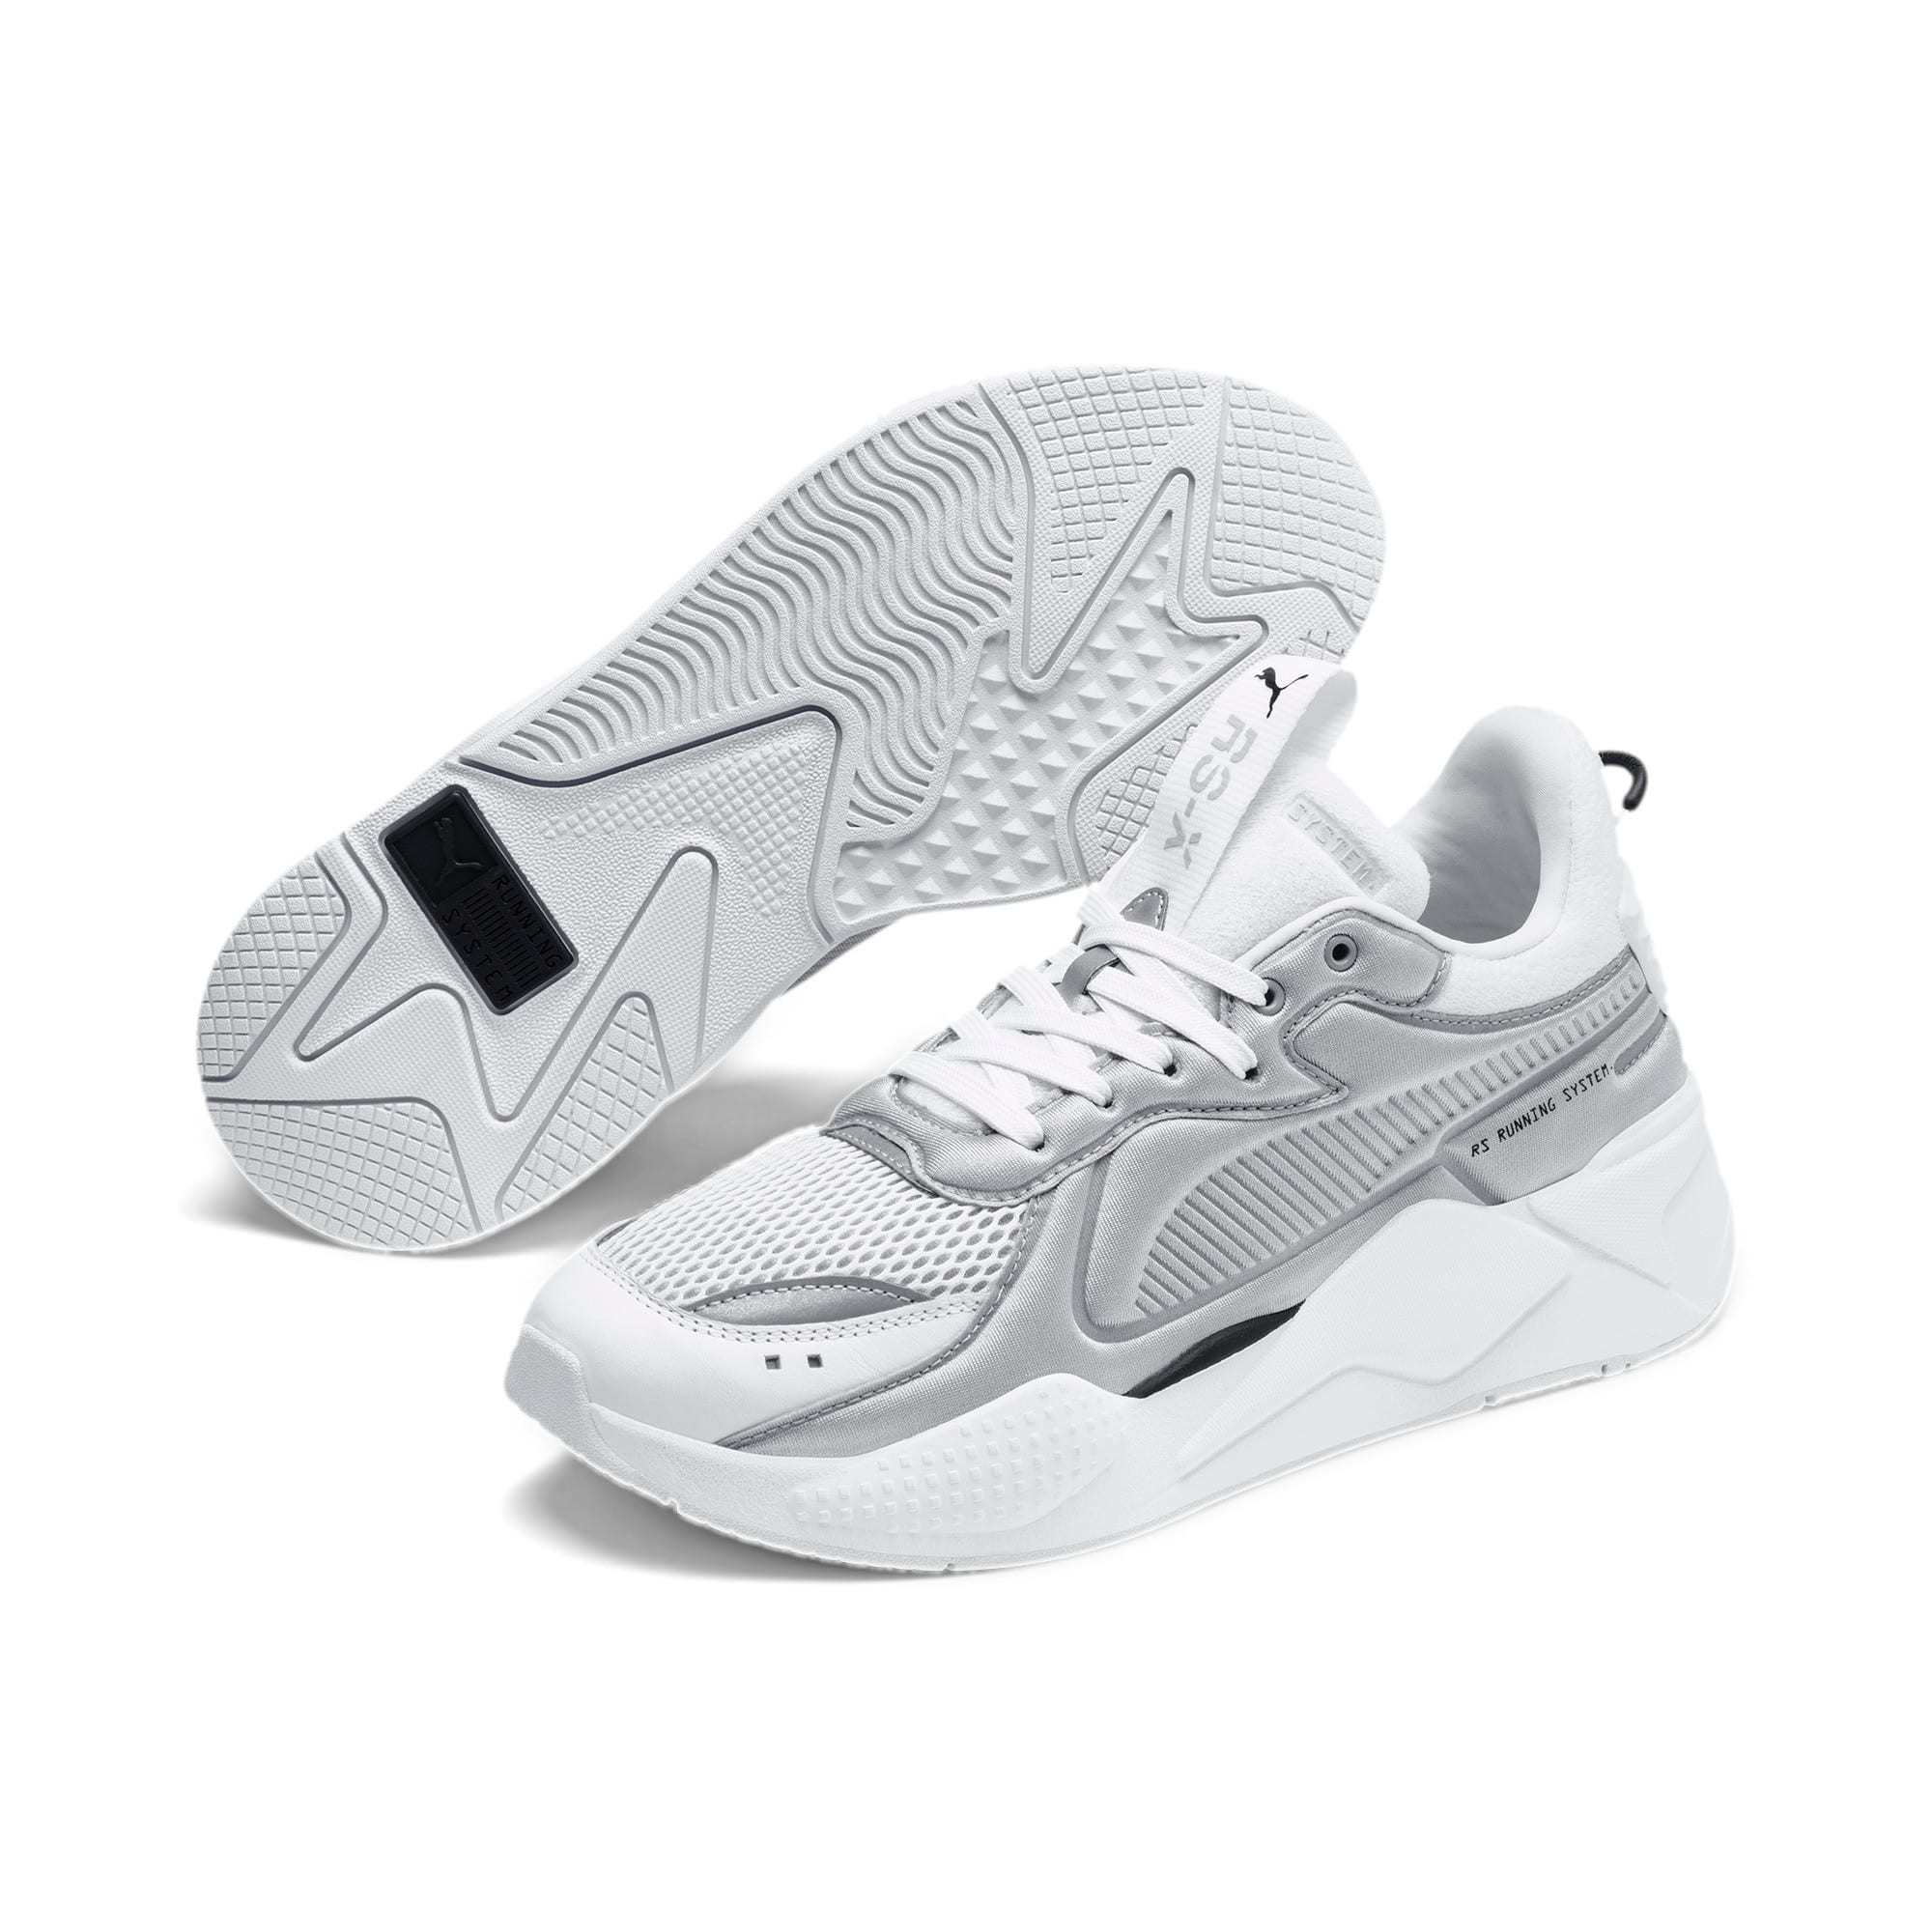 Thumbnail 3 of RS-X Softcase Sneakers, Puma White-High Rise, medium